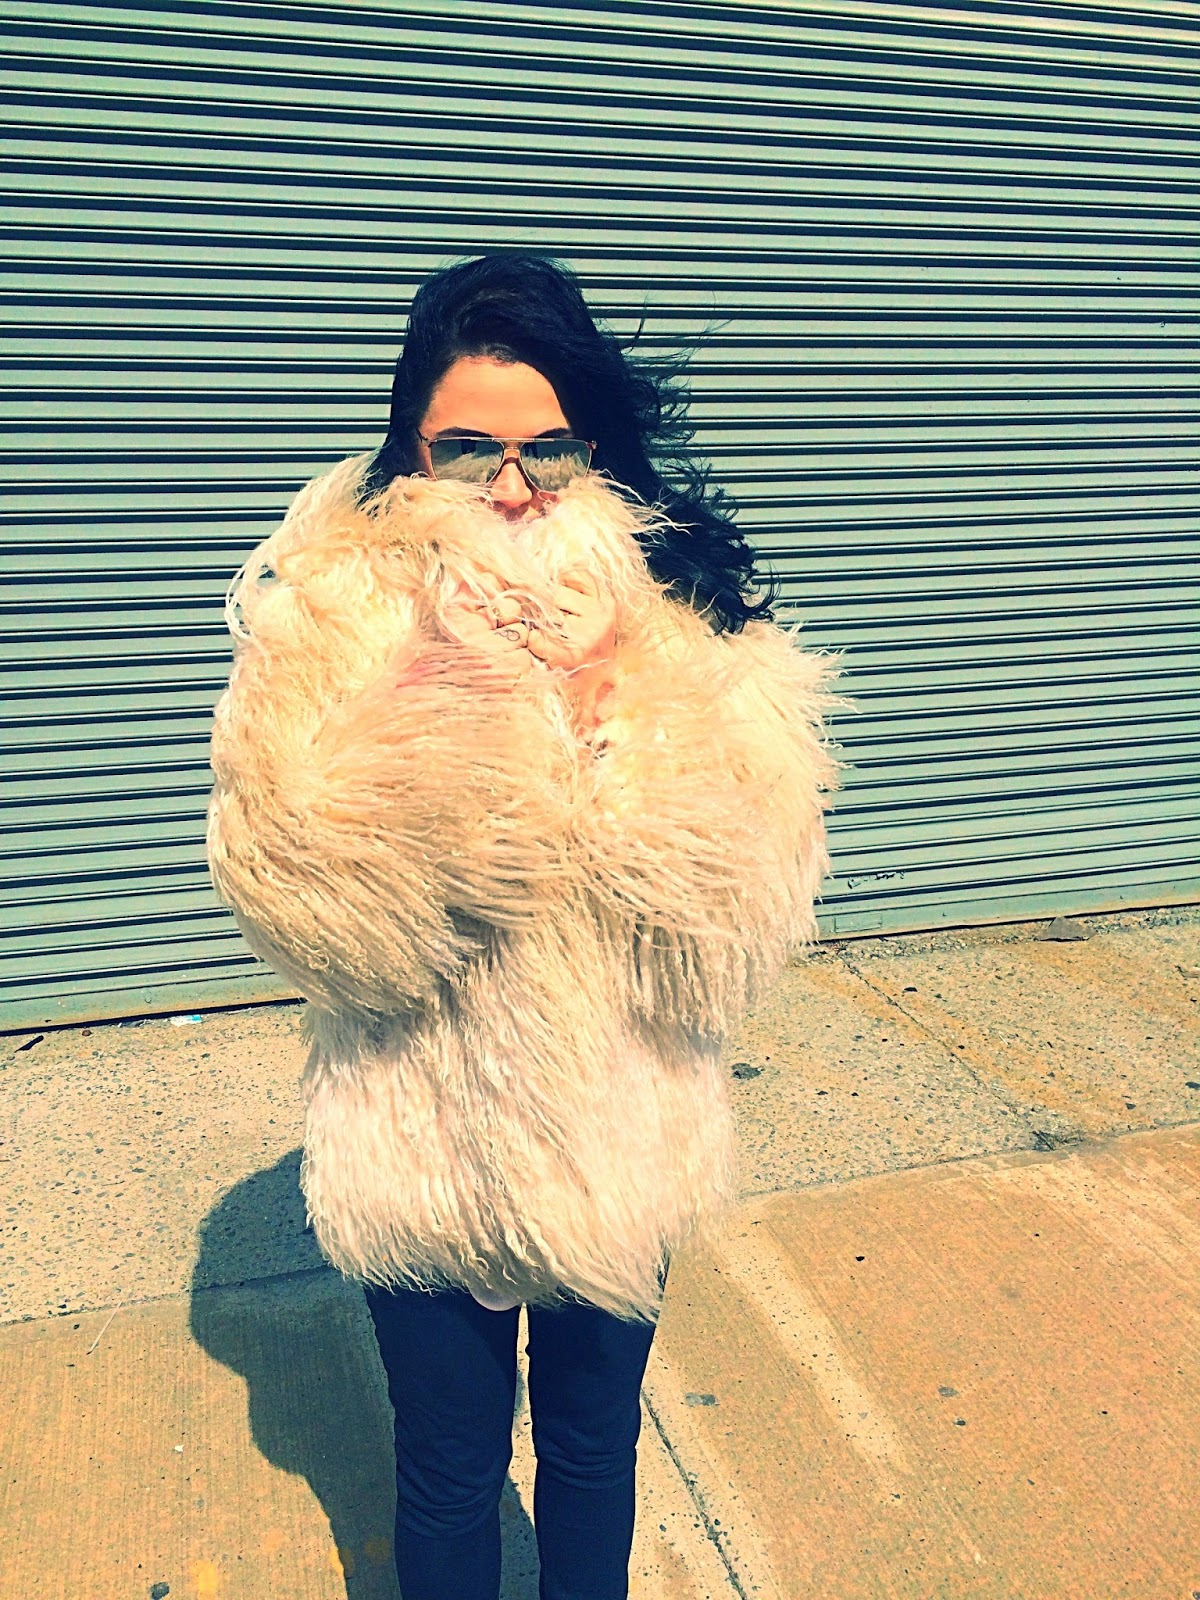 Olivia Inkster, NYC fashion blogger, vintage shag coat, Blow coat, vintage fur coat, white shag, seventies boho coat, Kate Hudson Almost Famous look outfit, Almost Famous movie clothes, No Relation vintage NYC, Lucky Selectism sunglasses, New York vintage stores, Burberry outfit inspiration, Burberry fur coat, winter white coat